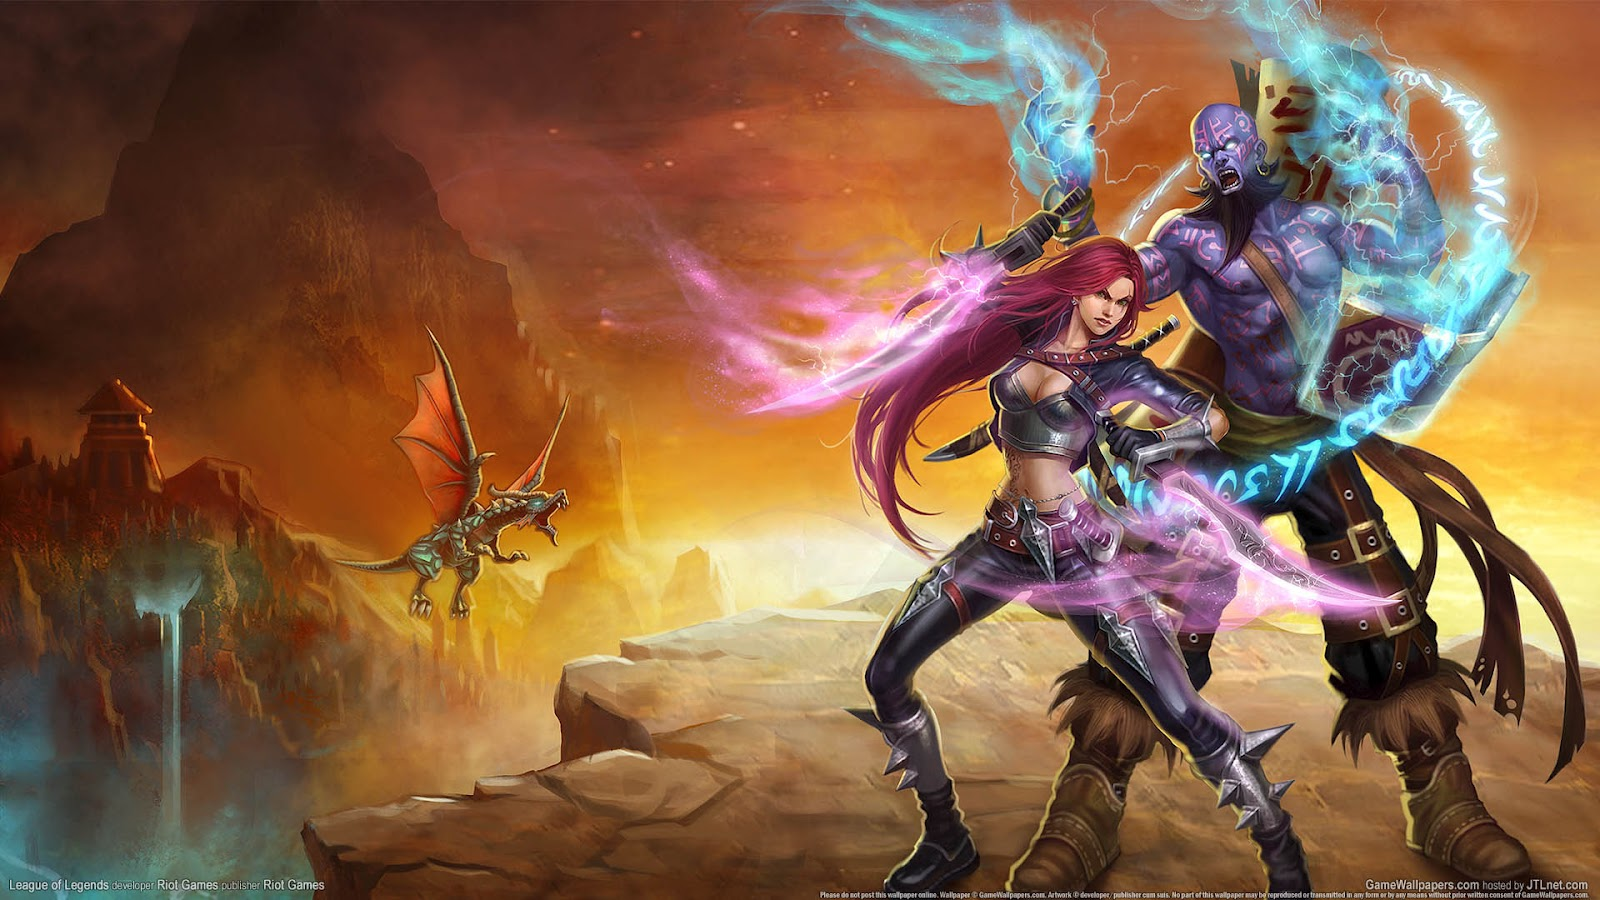 http://2.bp.blogspot.com/--B3I3o2tOgc/UF1PXlO65aI/AAAAAAAAAWg/x-DX2TKvDq4/s1600/League+Of+Legends-1920x1080.jpg